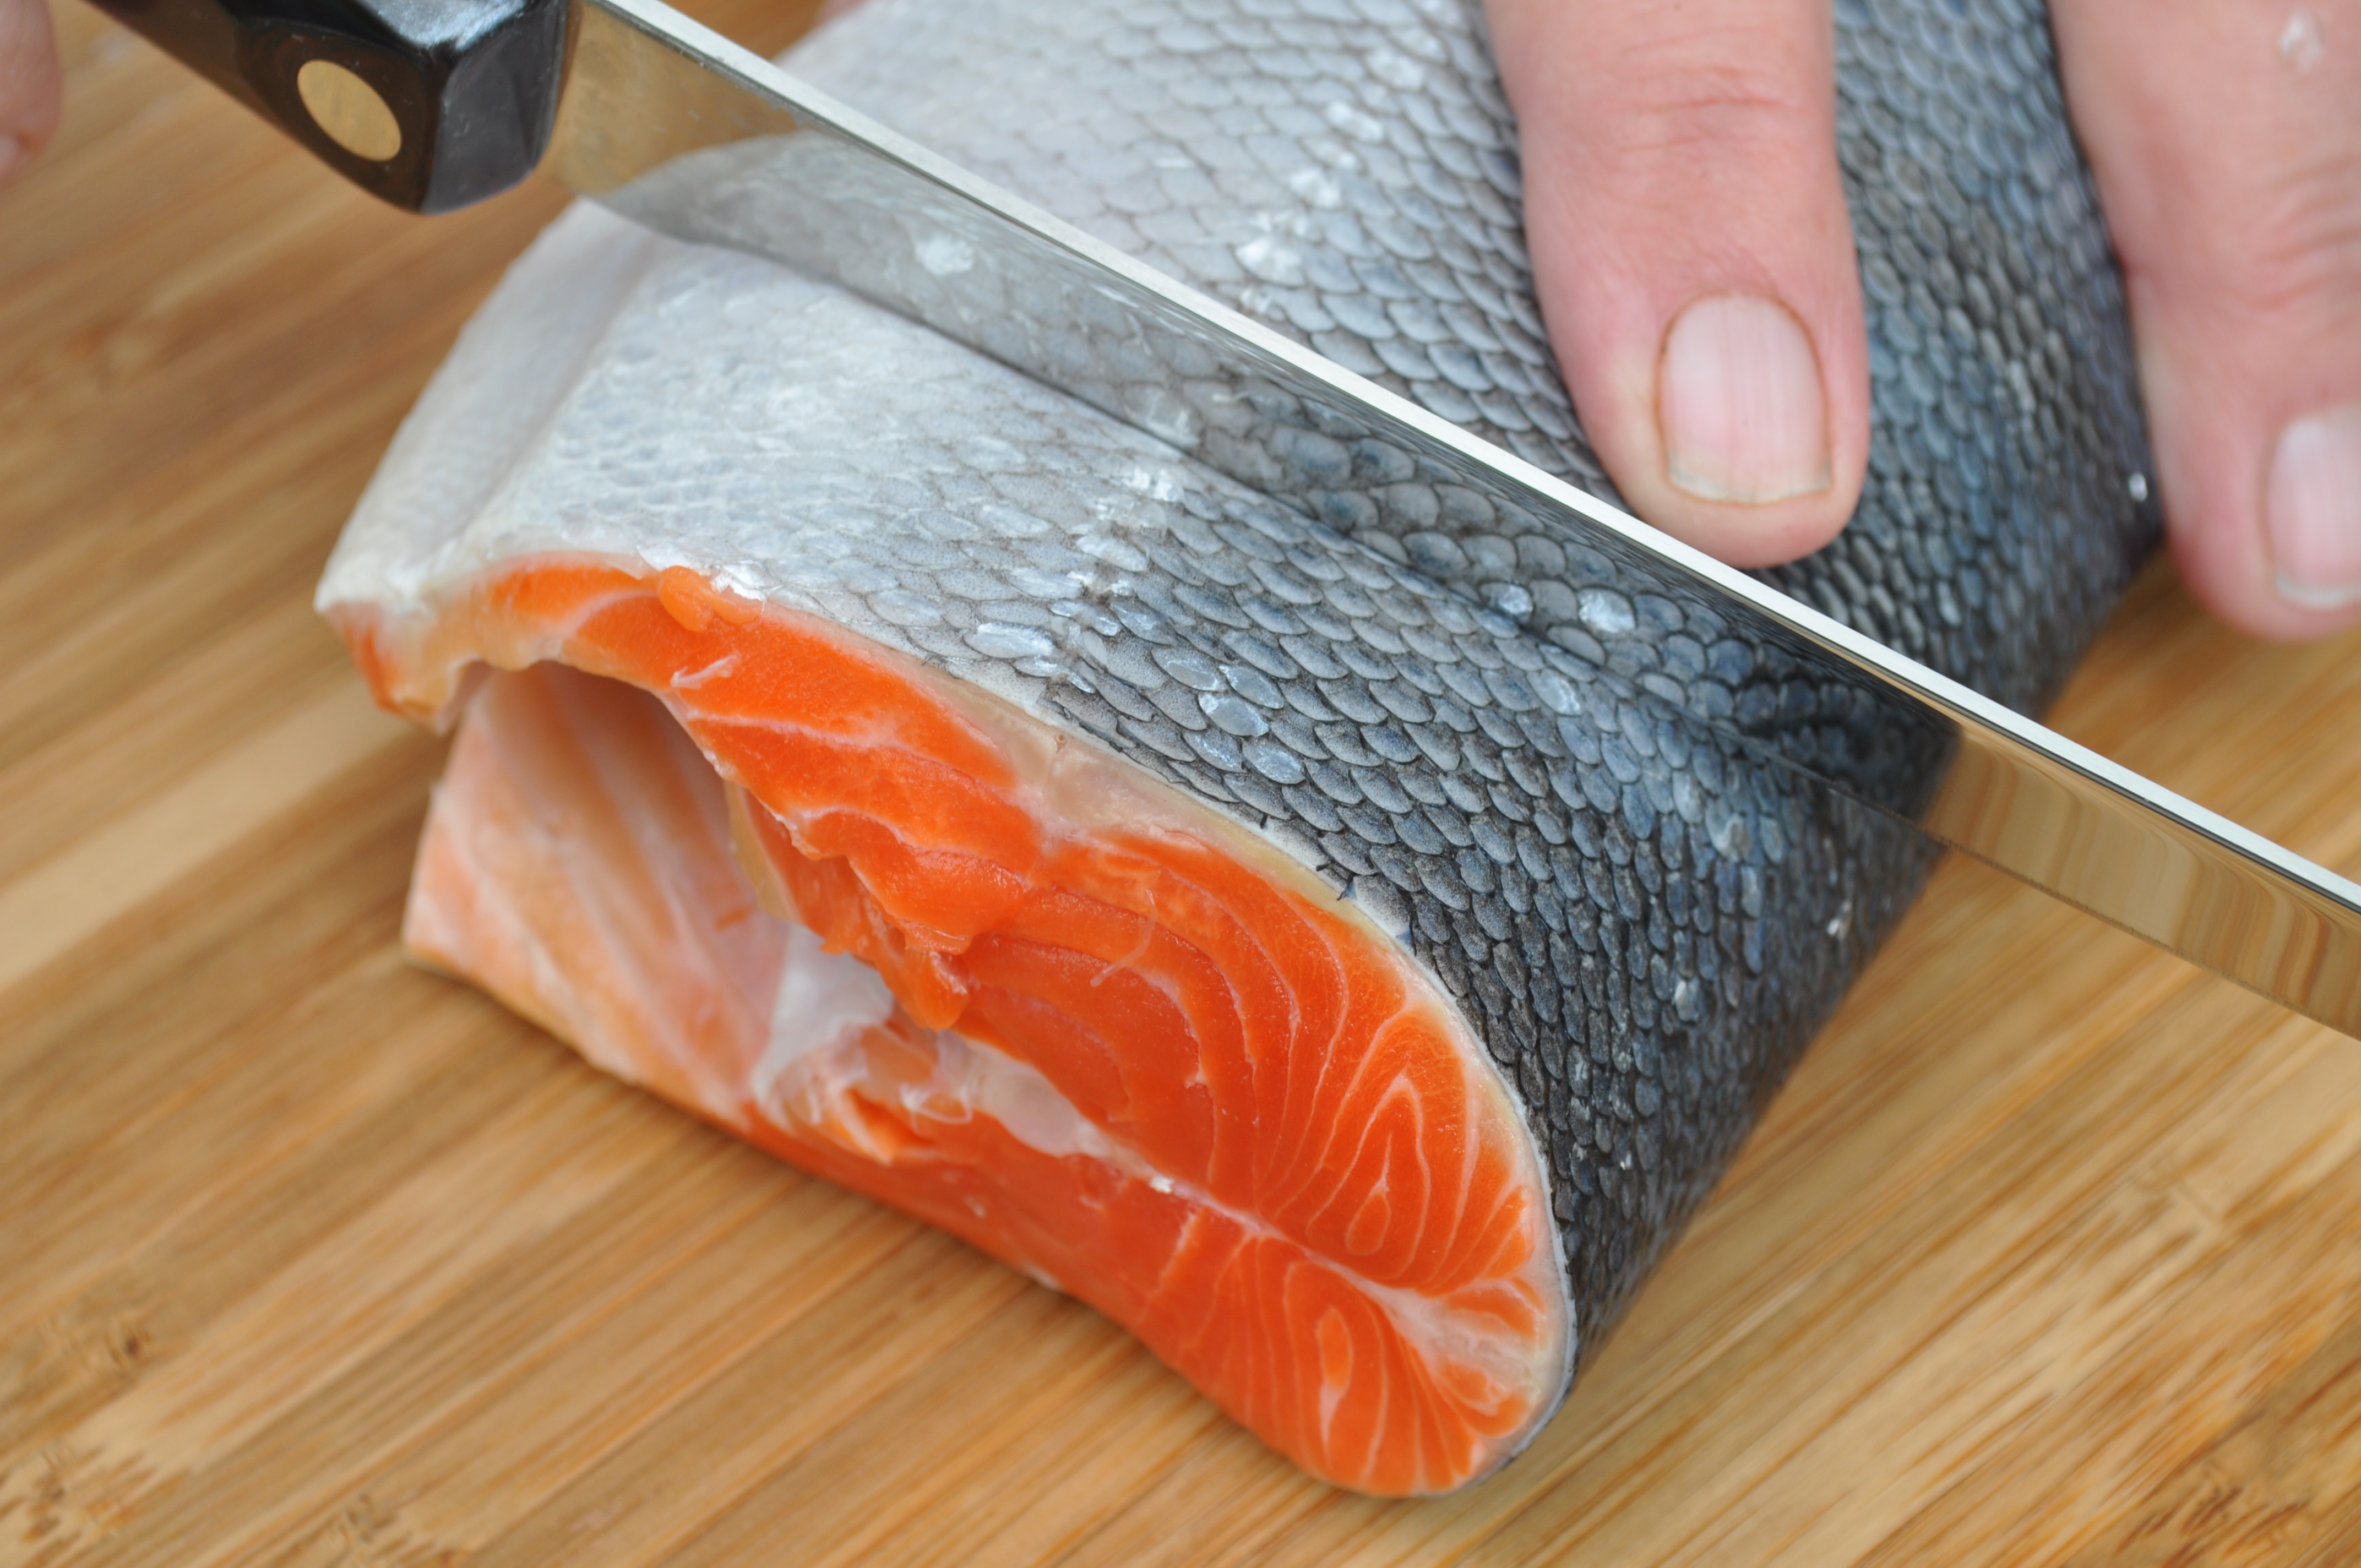 How to Prepare a Whole Salmon for the Grill